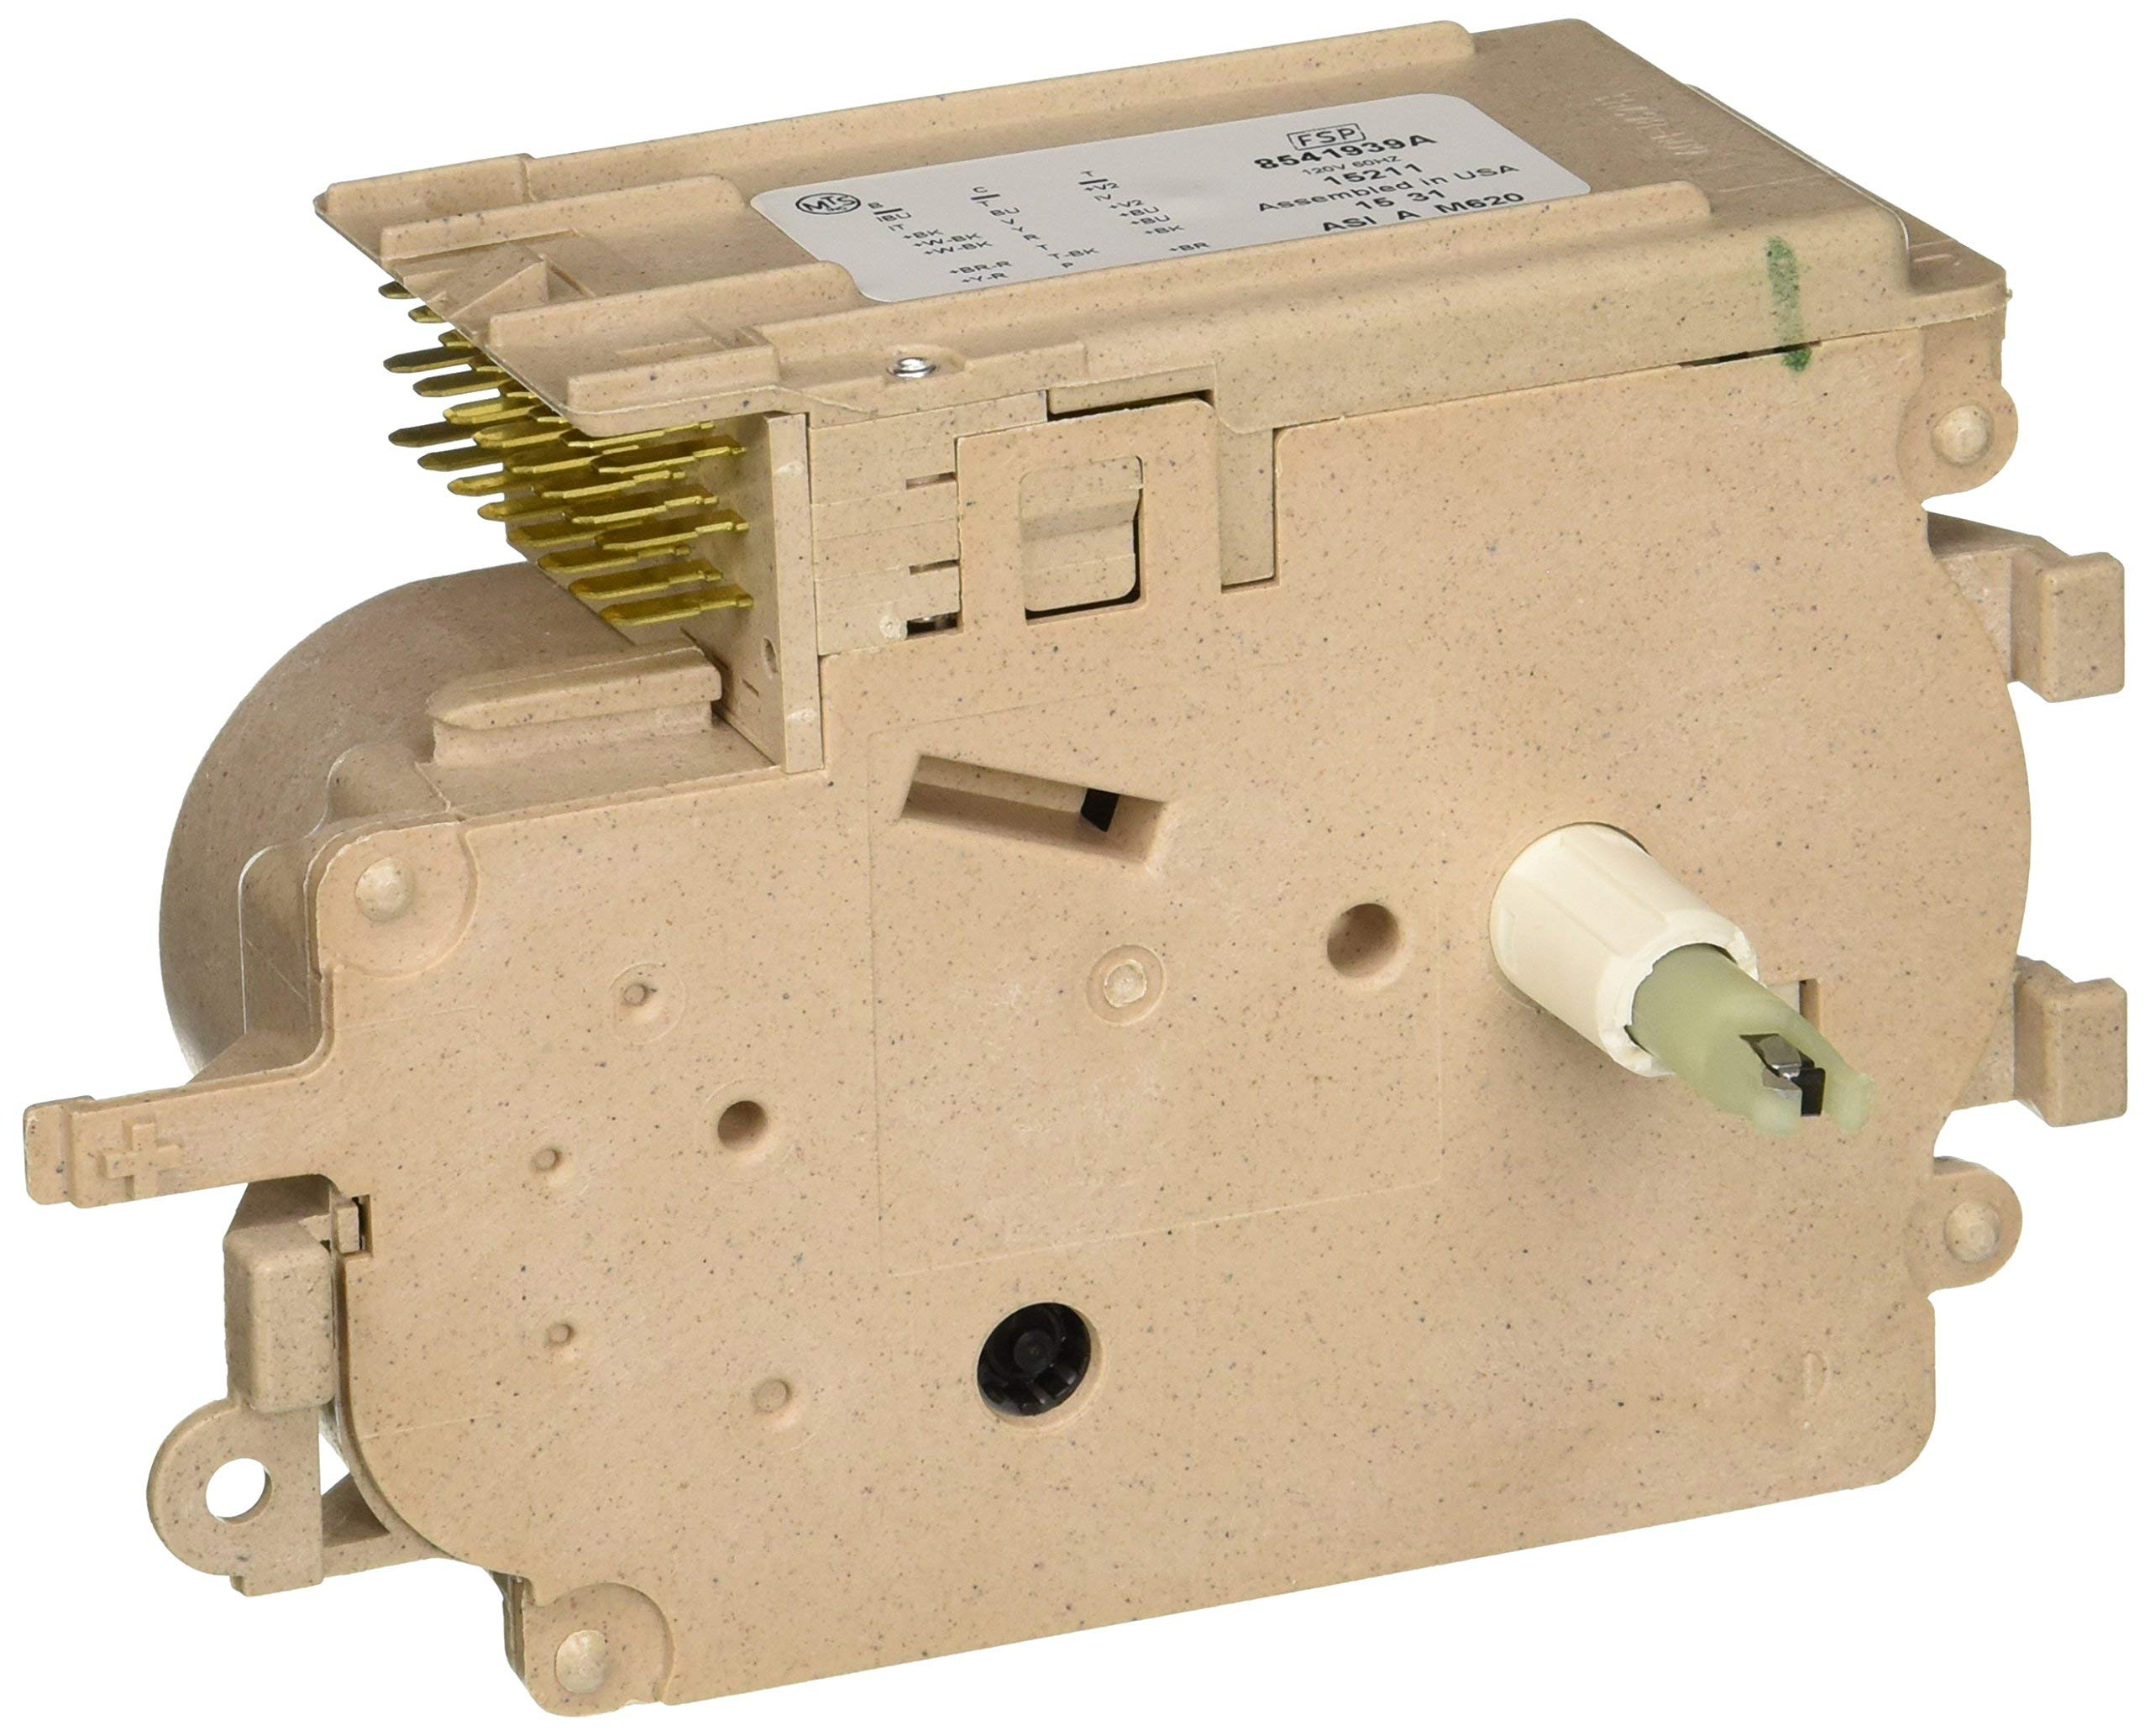 8541939 Whirlpool Washer Timer Renewed SAME DAY SHIP by Whirlpool (Image #1)